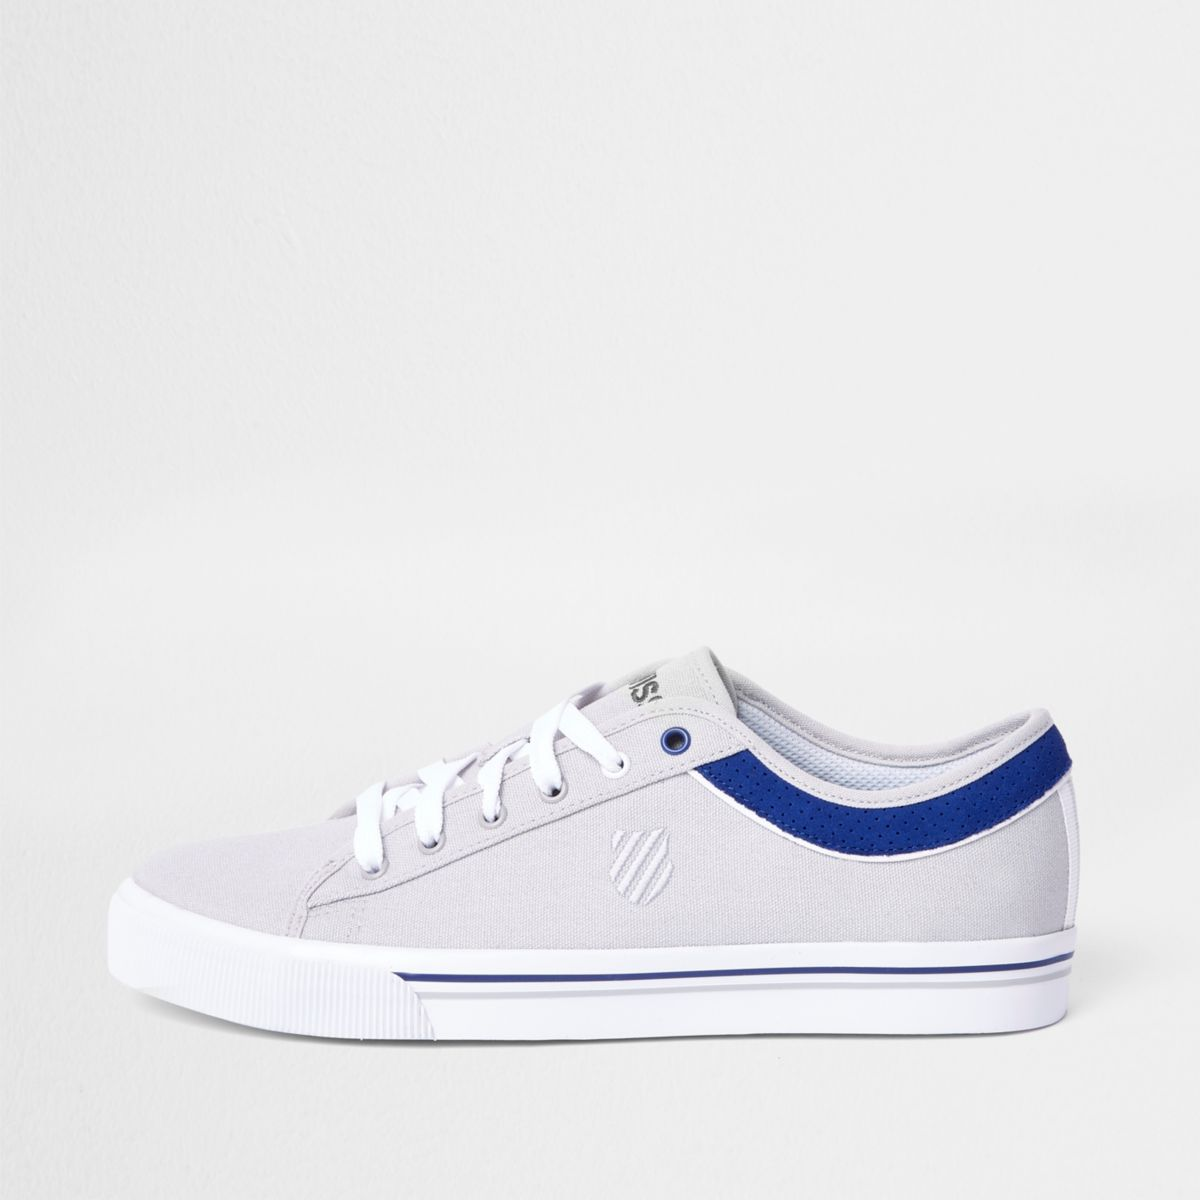 Light grey K-Swiss low top canvas sneakers